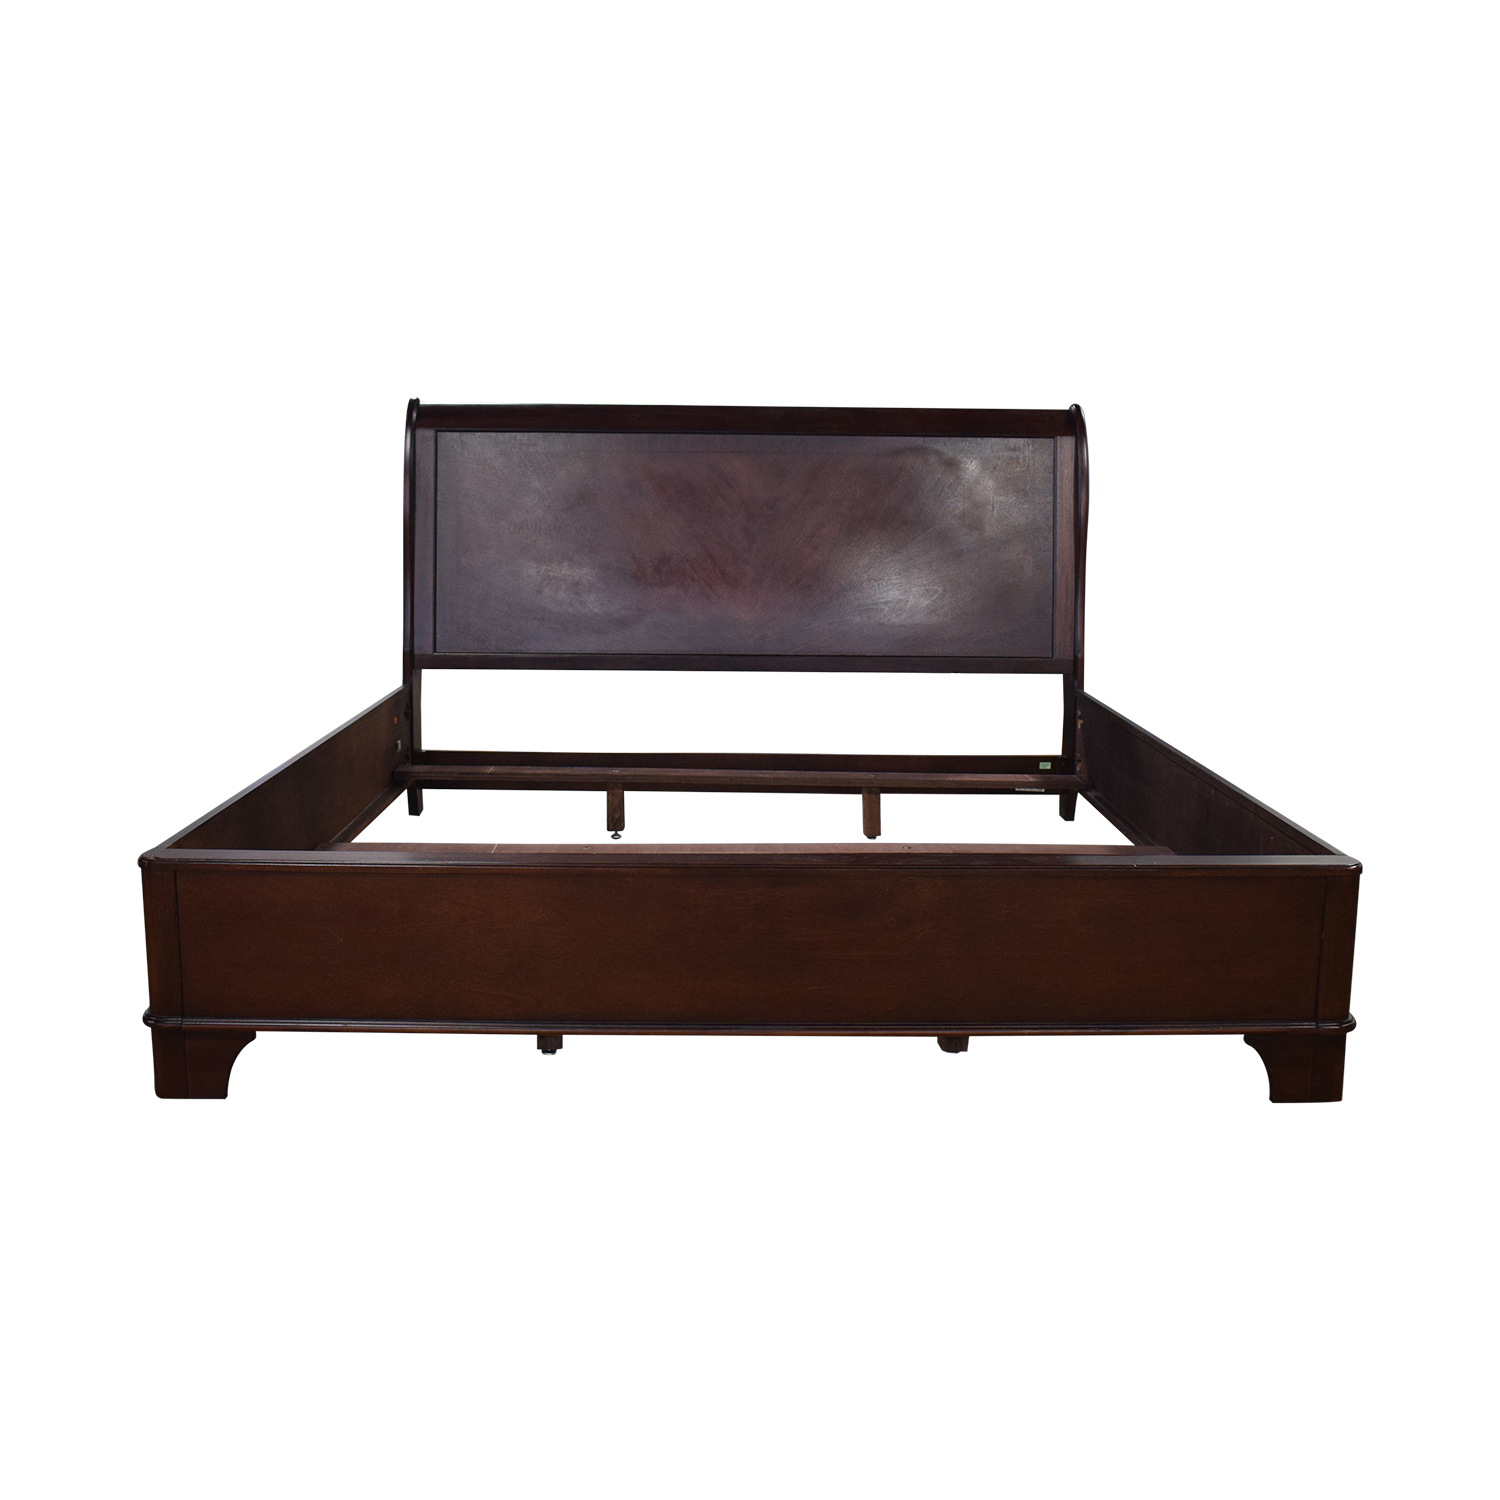 Macy's Macy's Wood King Bed Frame Beds